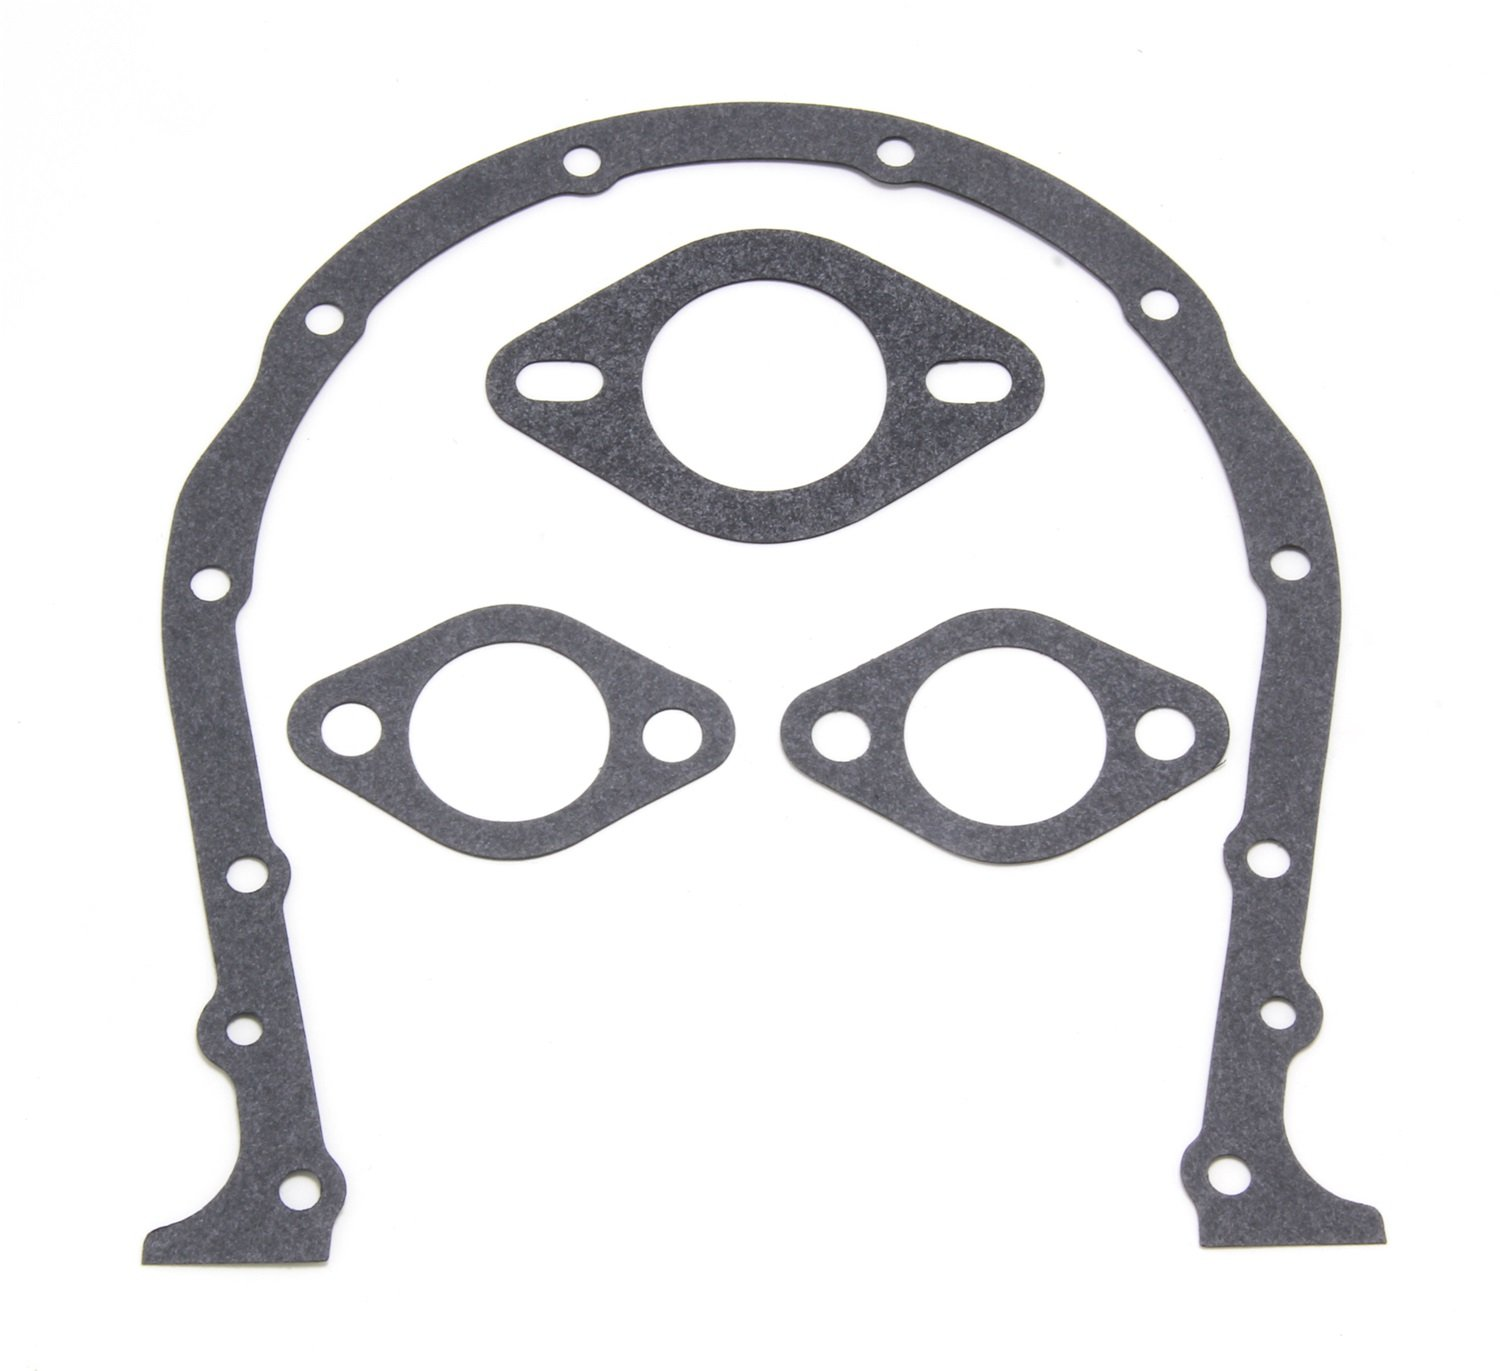 Trans-Dapt 4365 Timing Cover Gasket